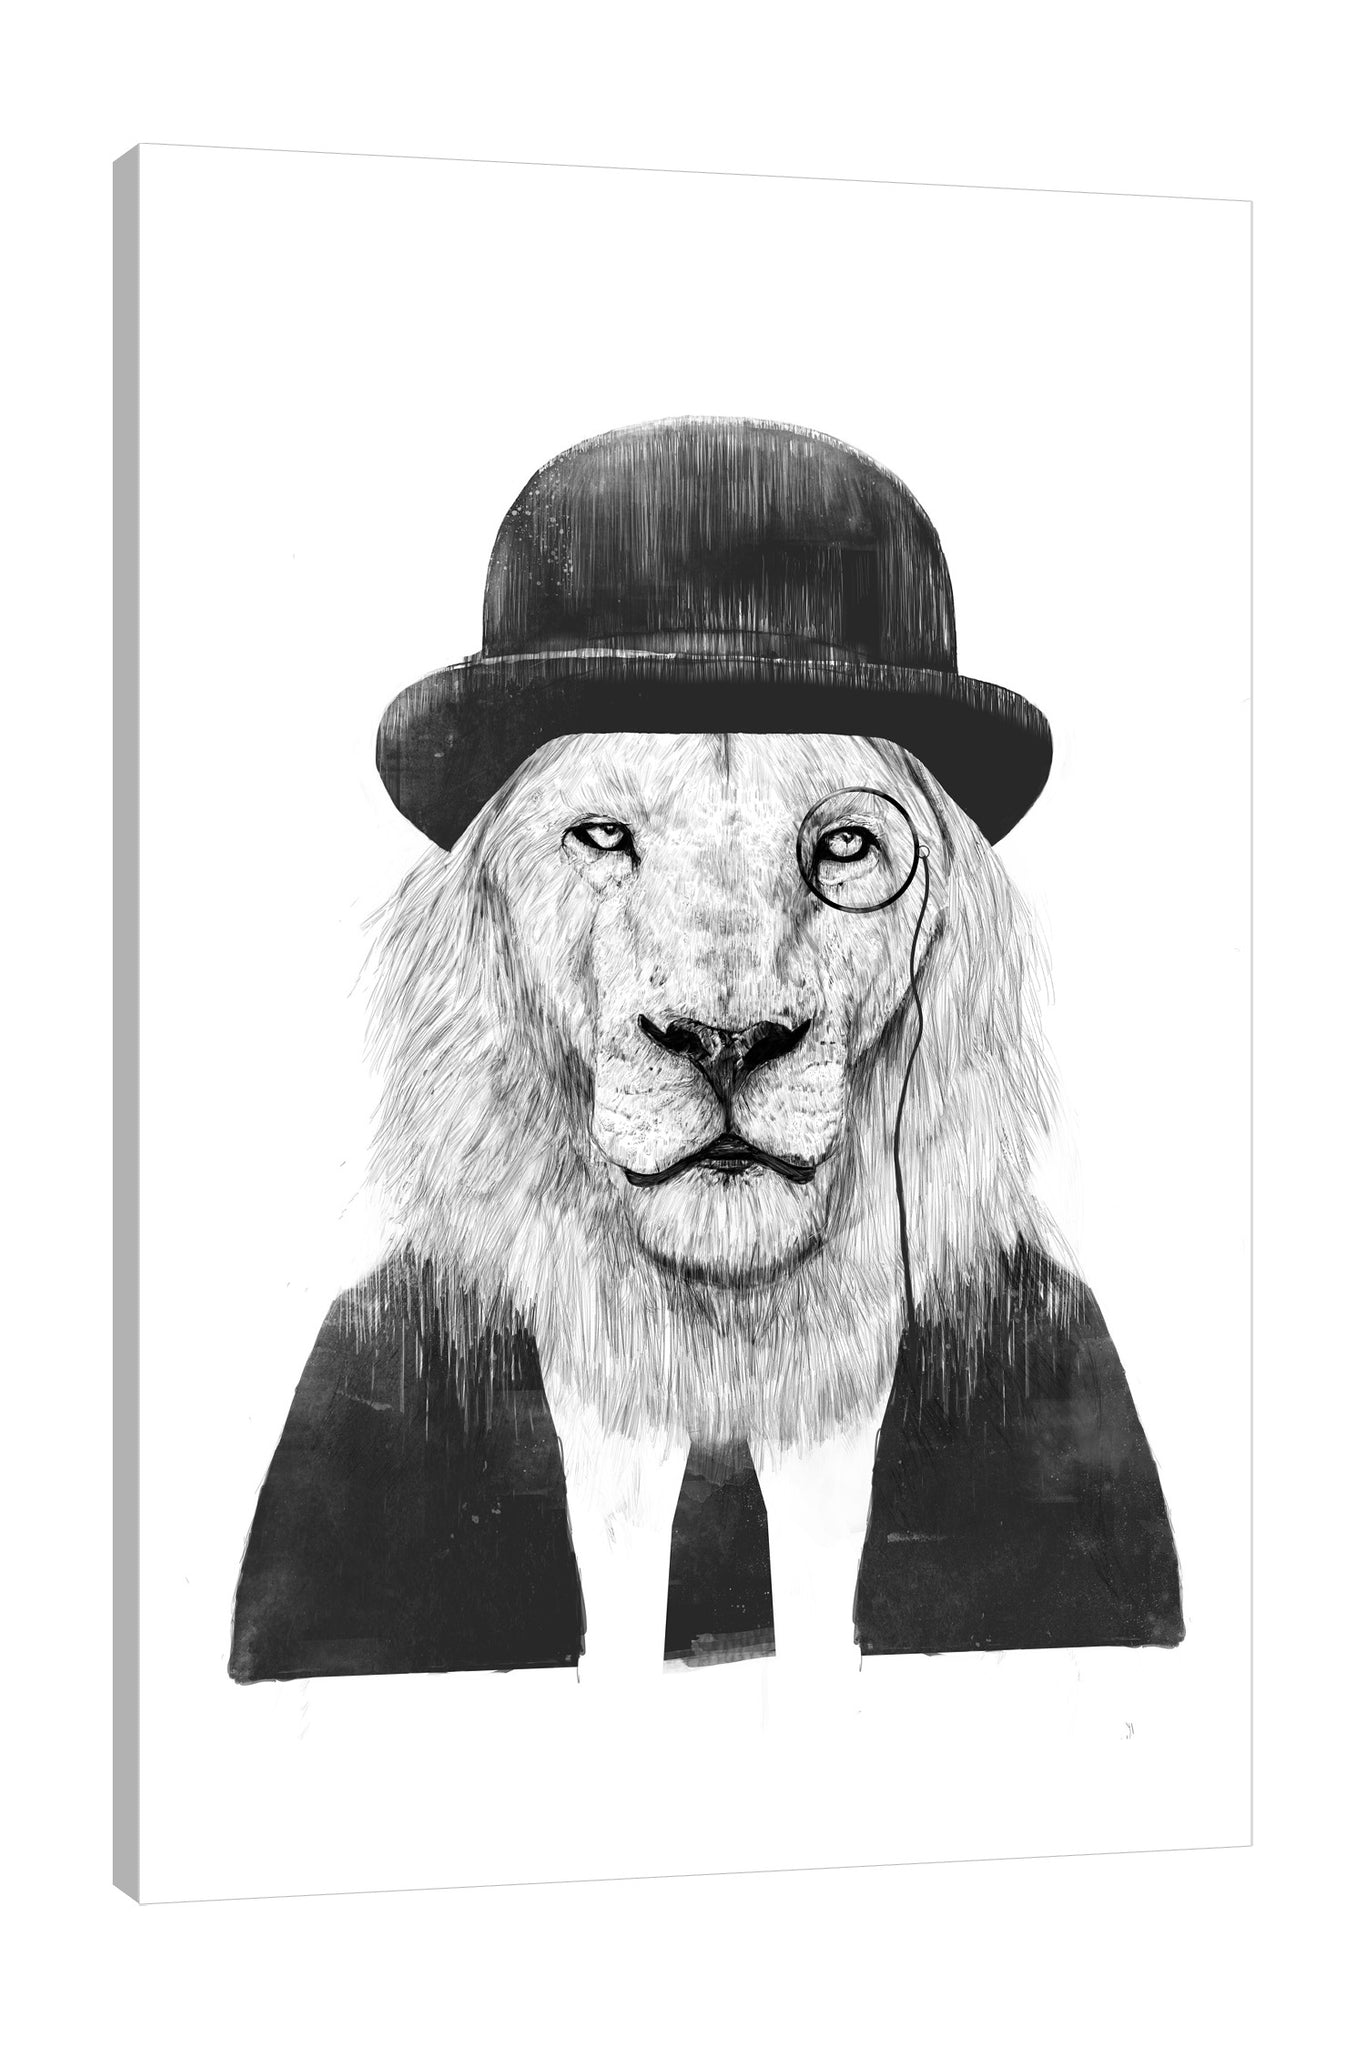 Balazs-Solti,Modern & Contemporary,Animals,Fashion,animals,animal,lion,lions,hats,hat,suit,suits,sir lion,necktie,neckties,black and white,Red,Mist Gray,Black,White